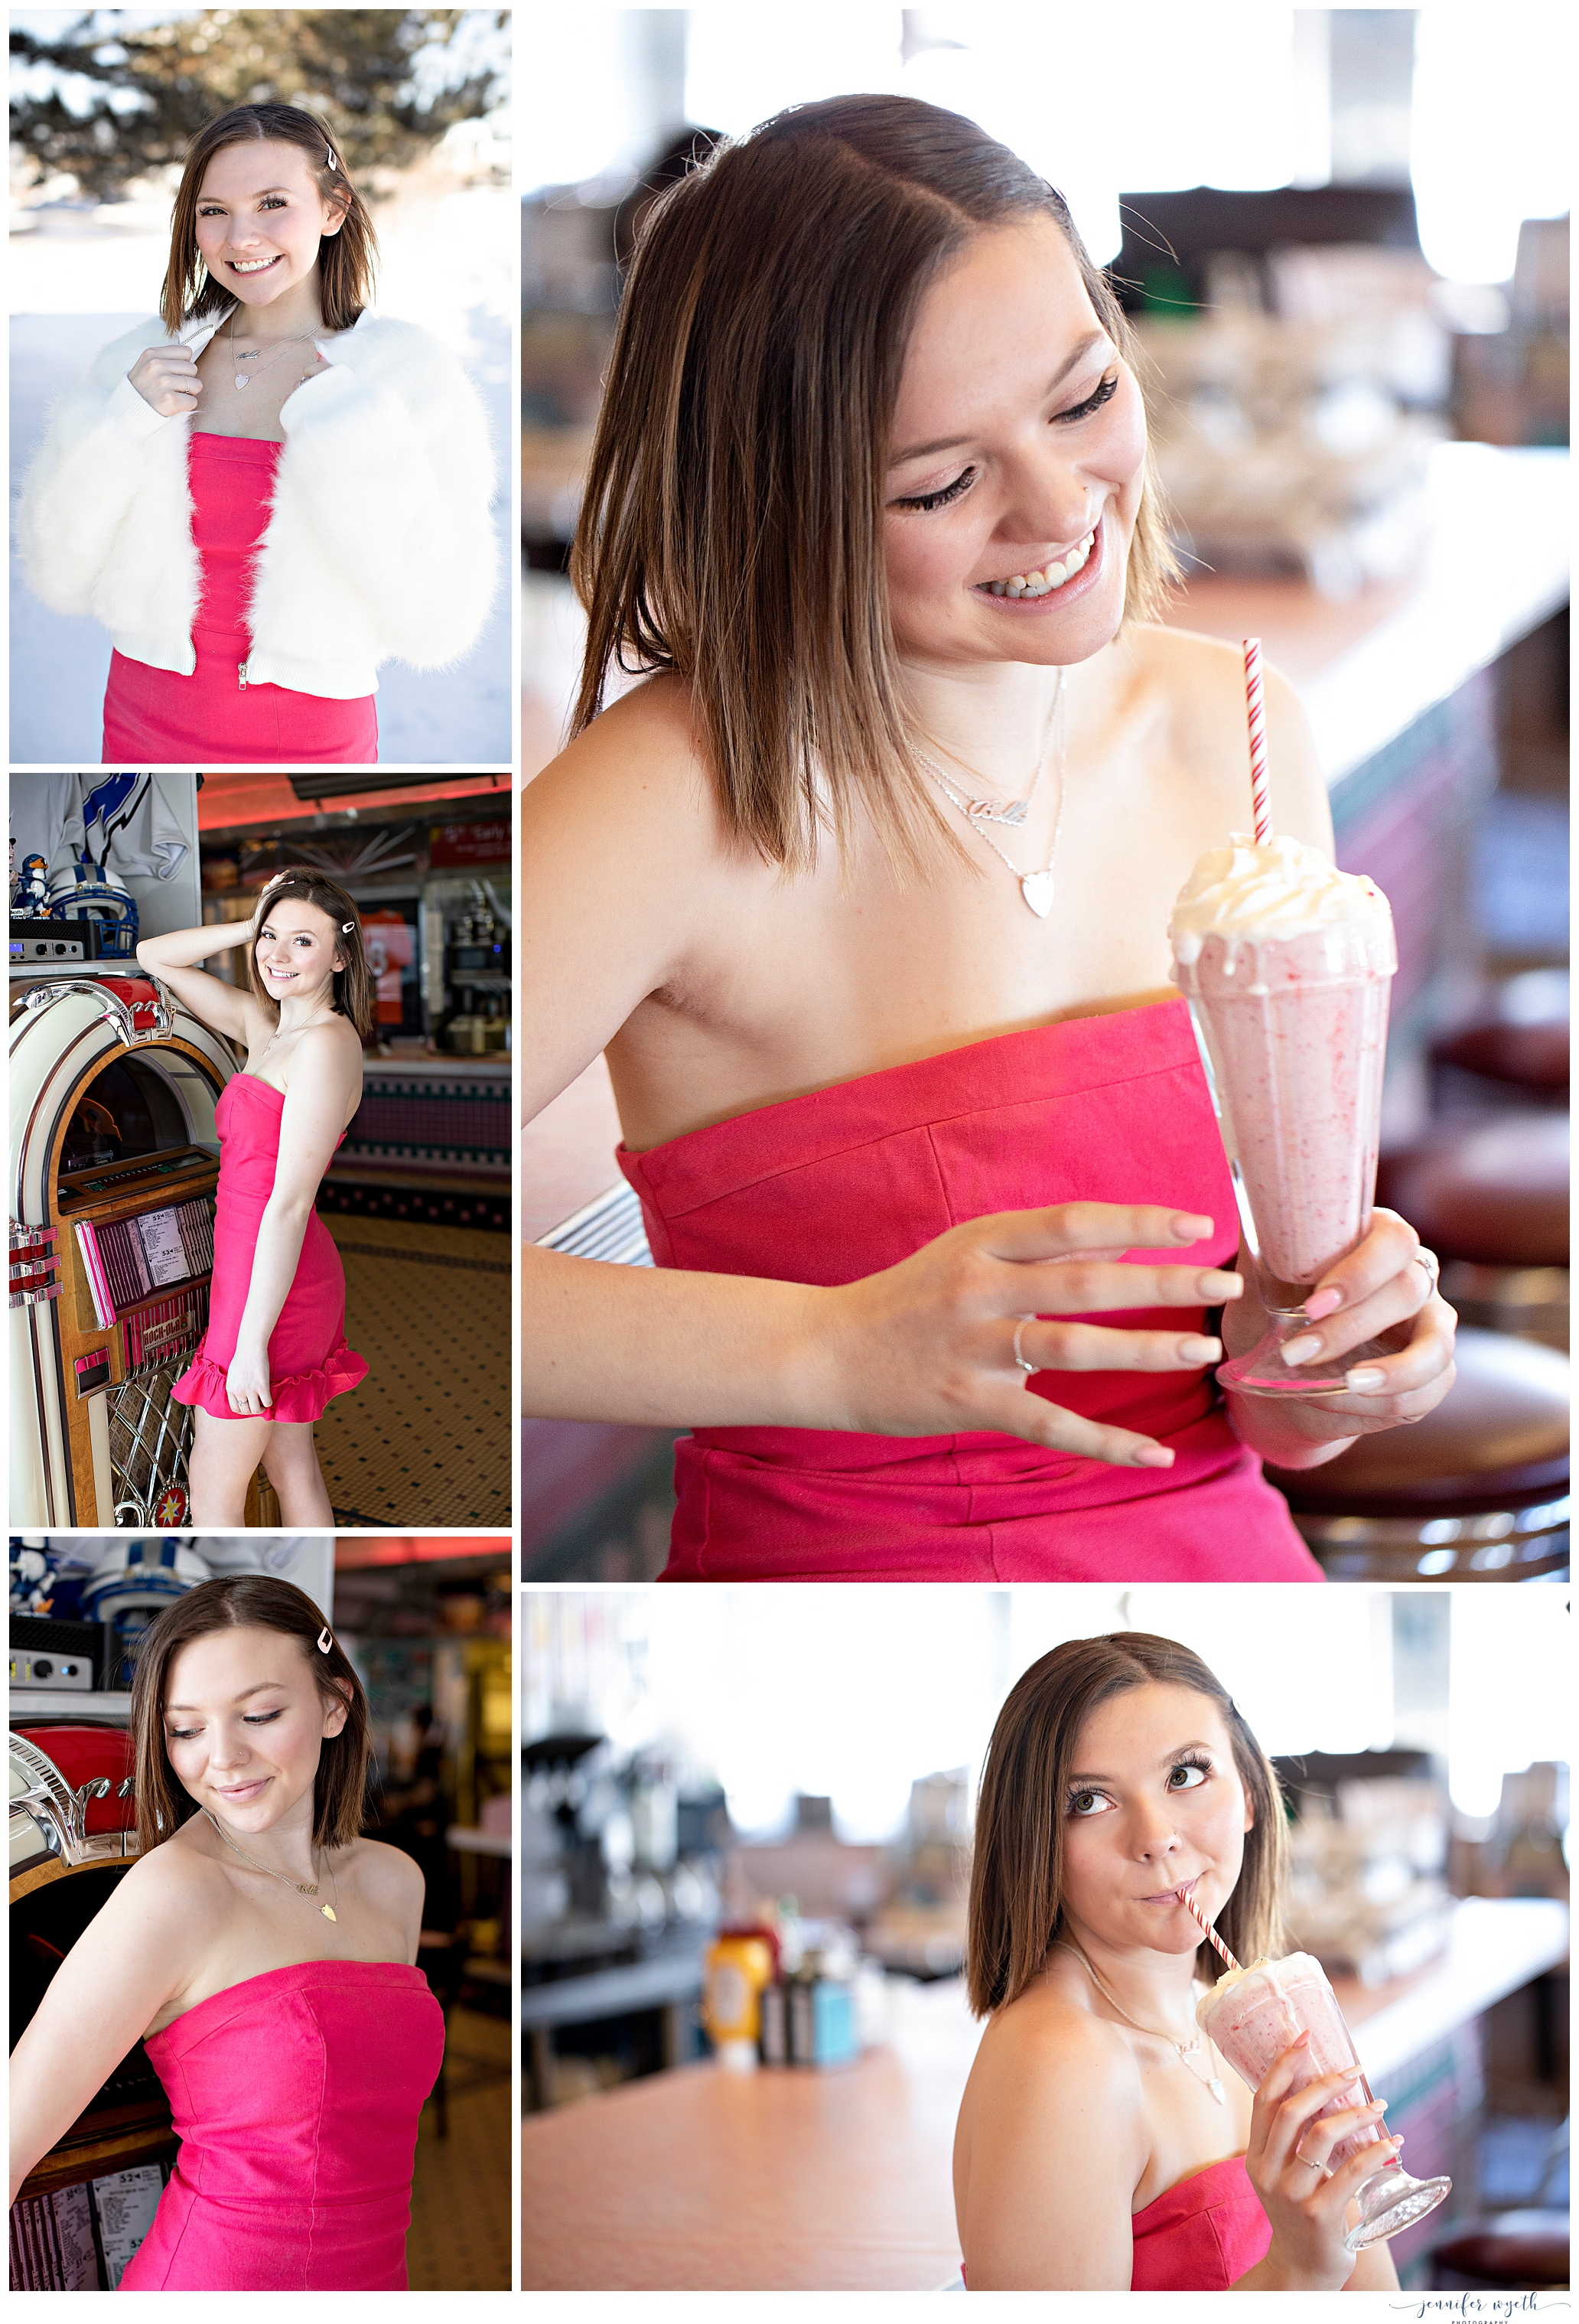 Jennifer-Wyeth-photography-senior-pictures-colorado-springs-photographer_0288.jpg